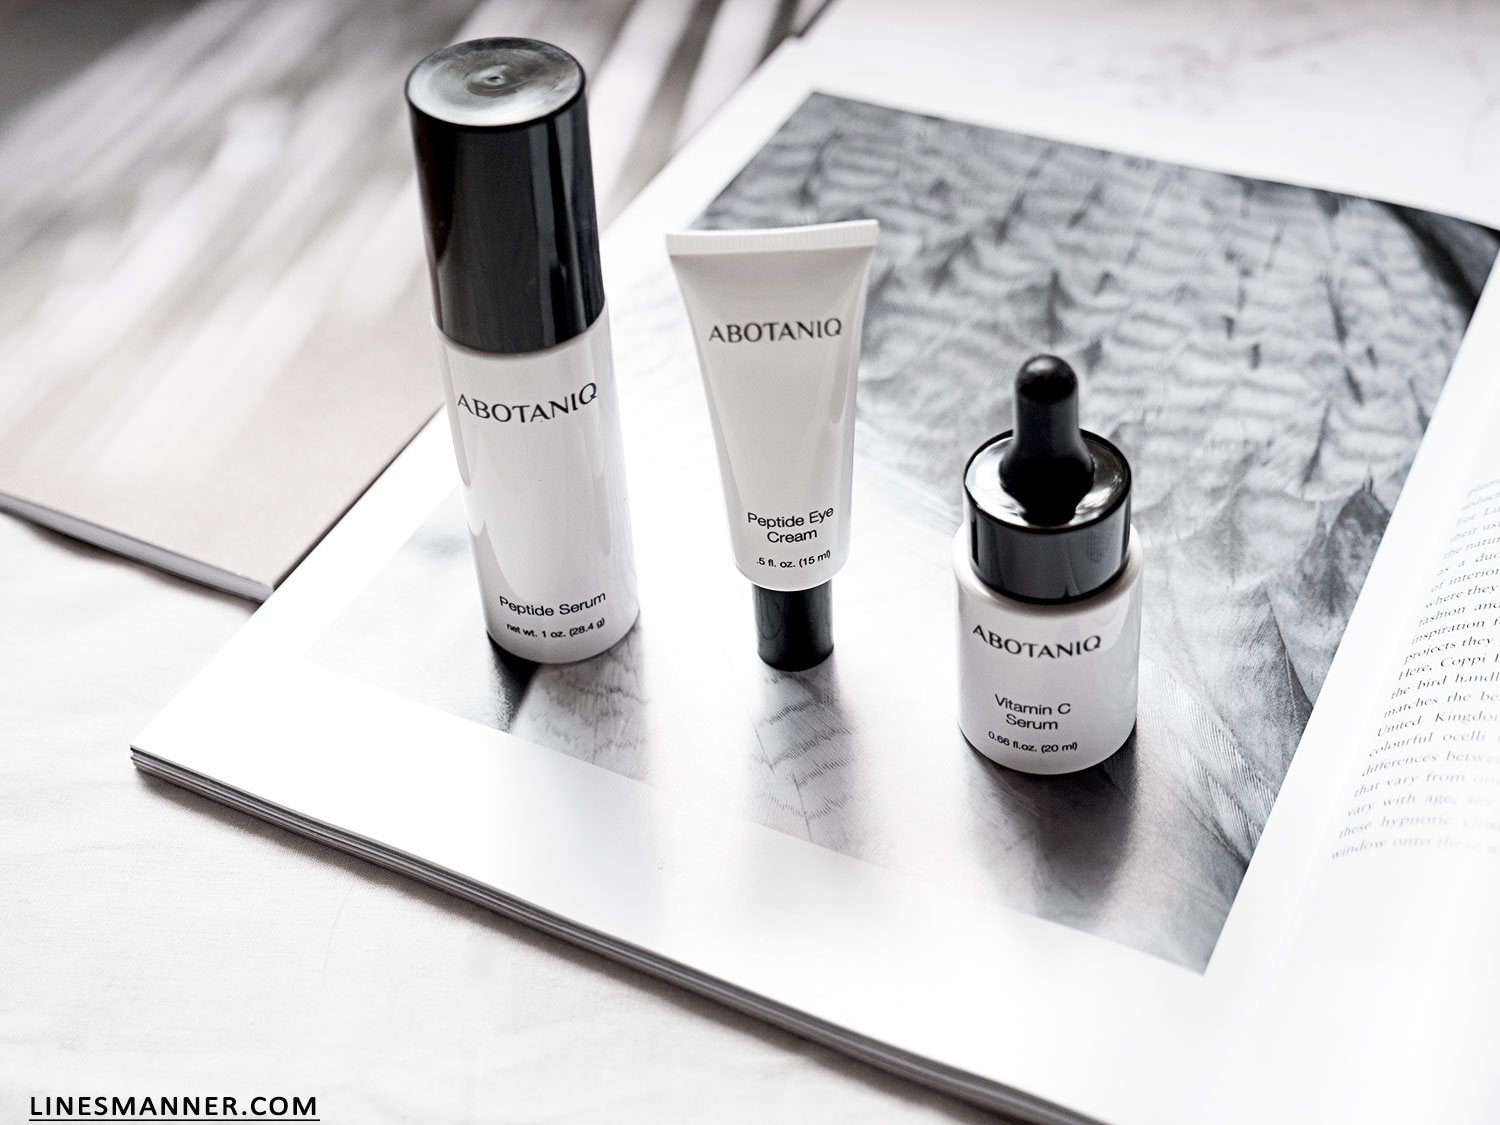 Lines-Manner-Abotaniq-Skin_Care-Natural-Science-Technology-Beauty-Quality-Authentic-Skins-Peptides-Antioxidant-Fresh-Black_and_White-Essentials-Expert-3